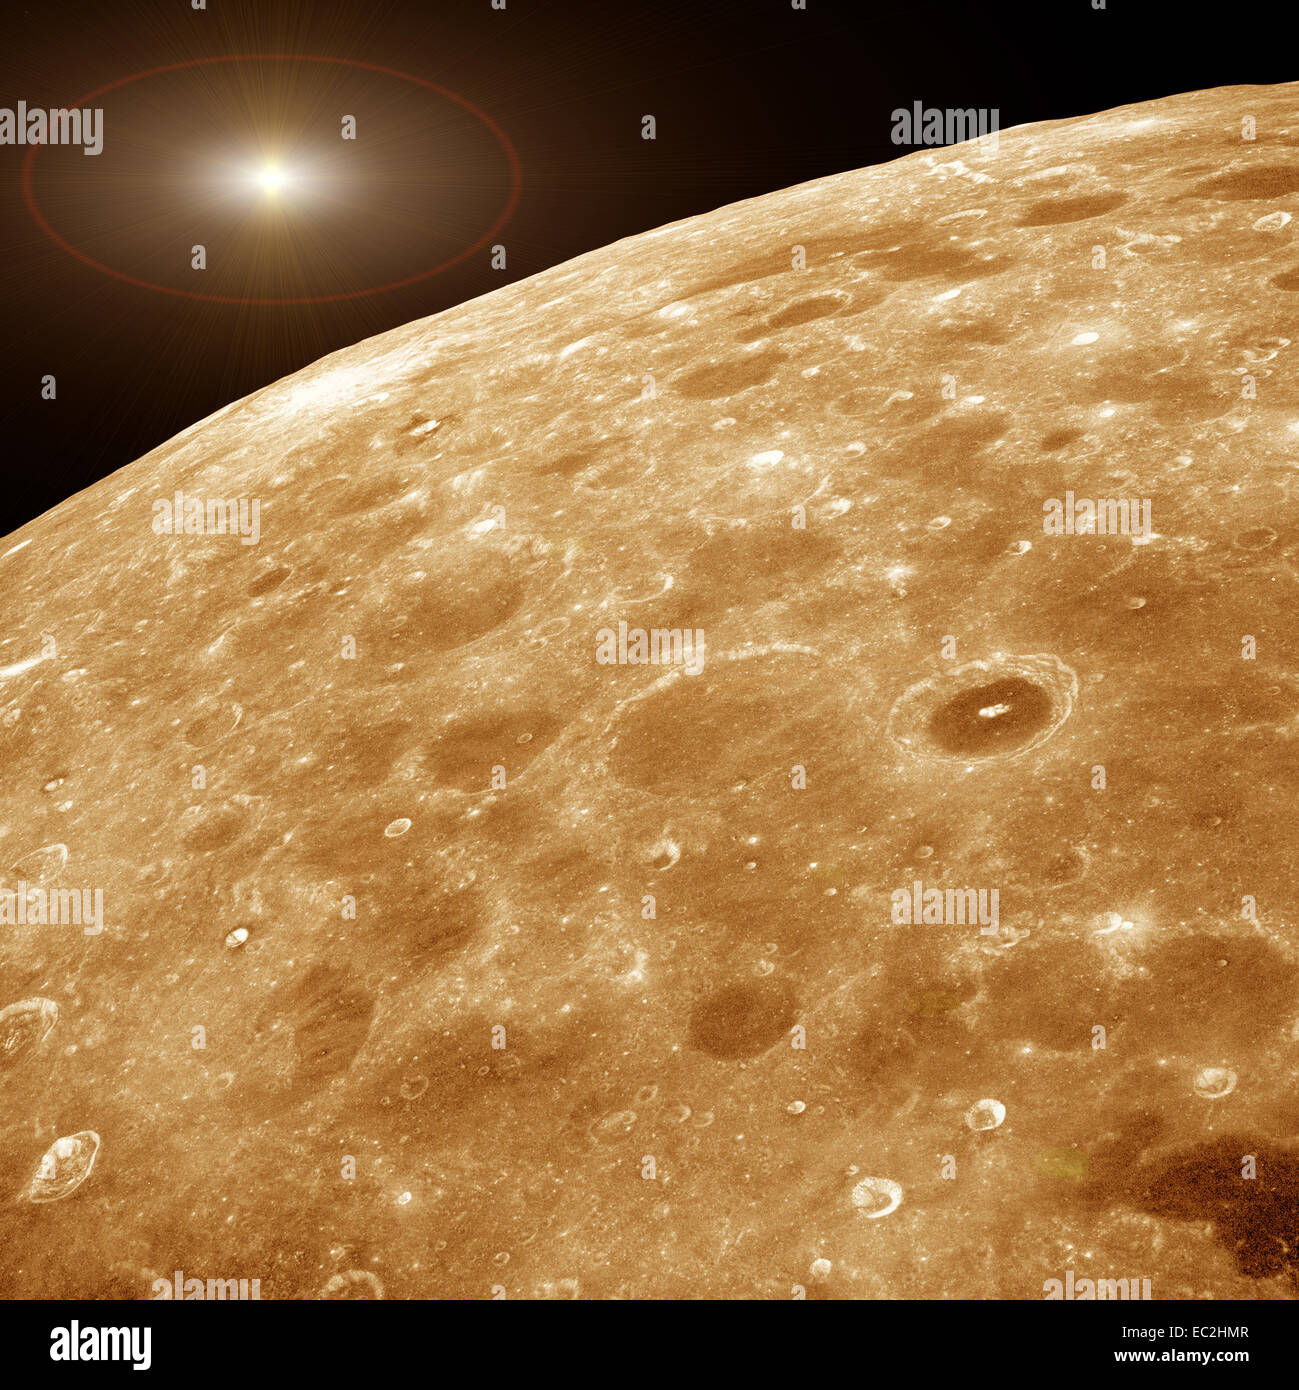 distant star and closeup of moon surface - Stock Image